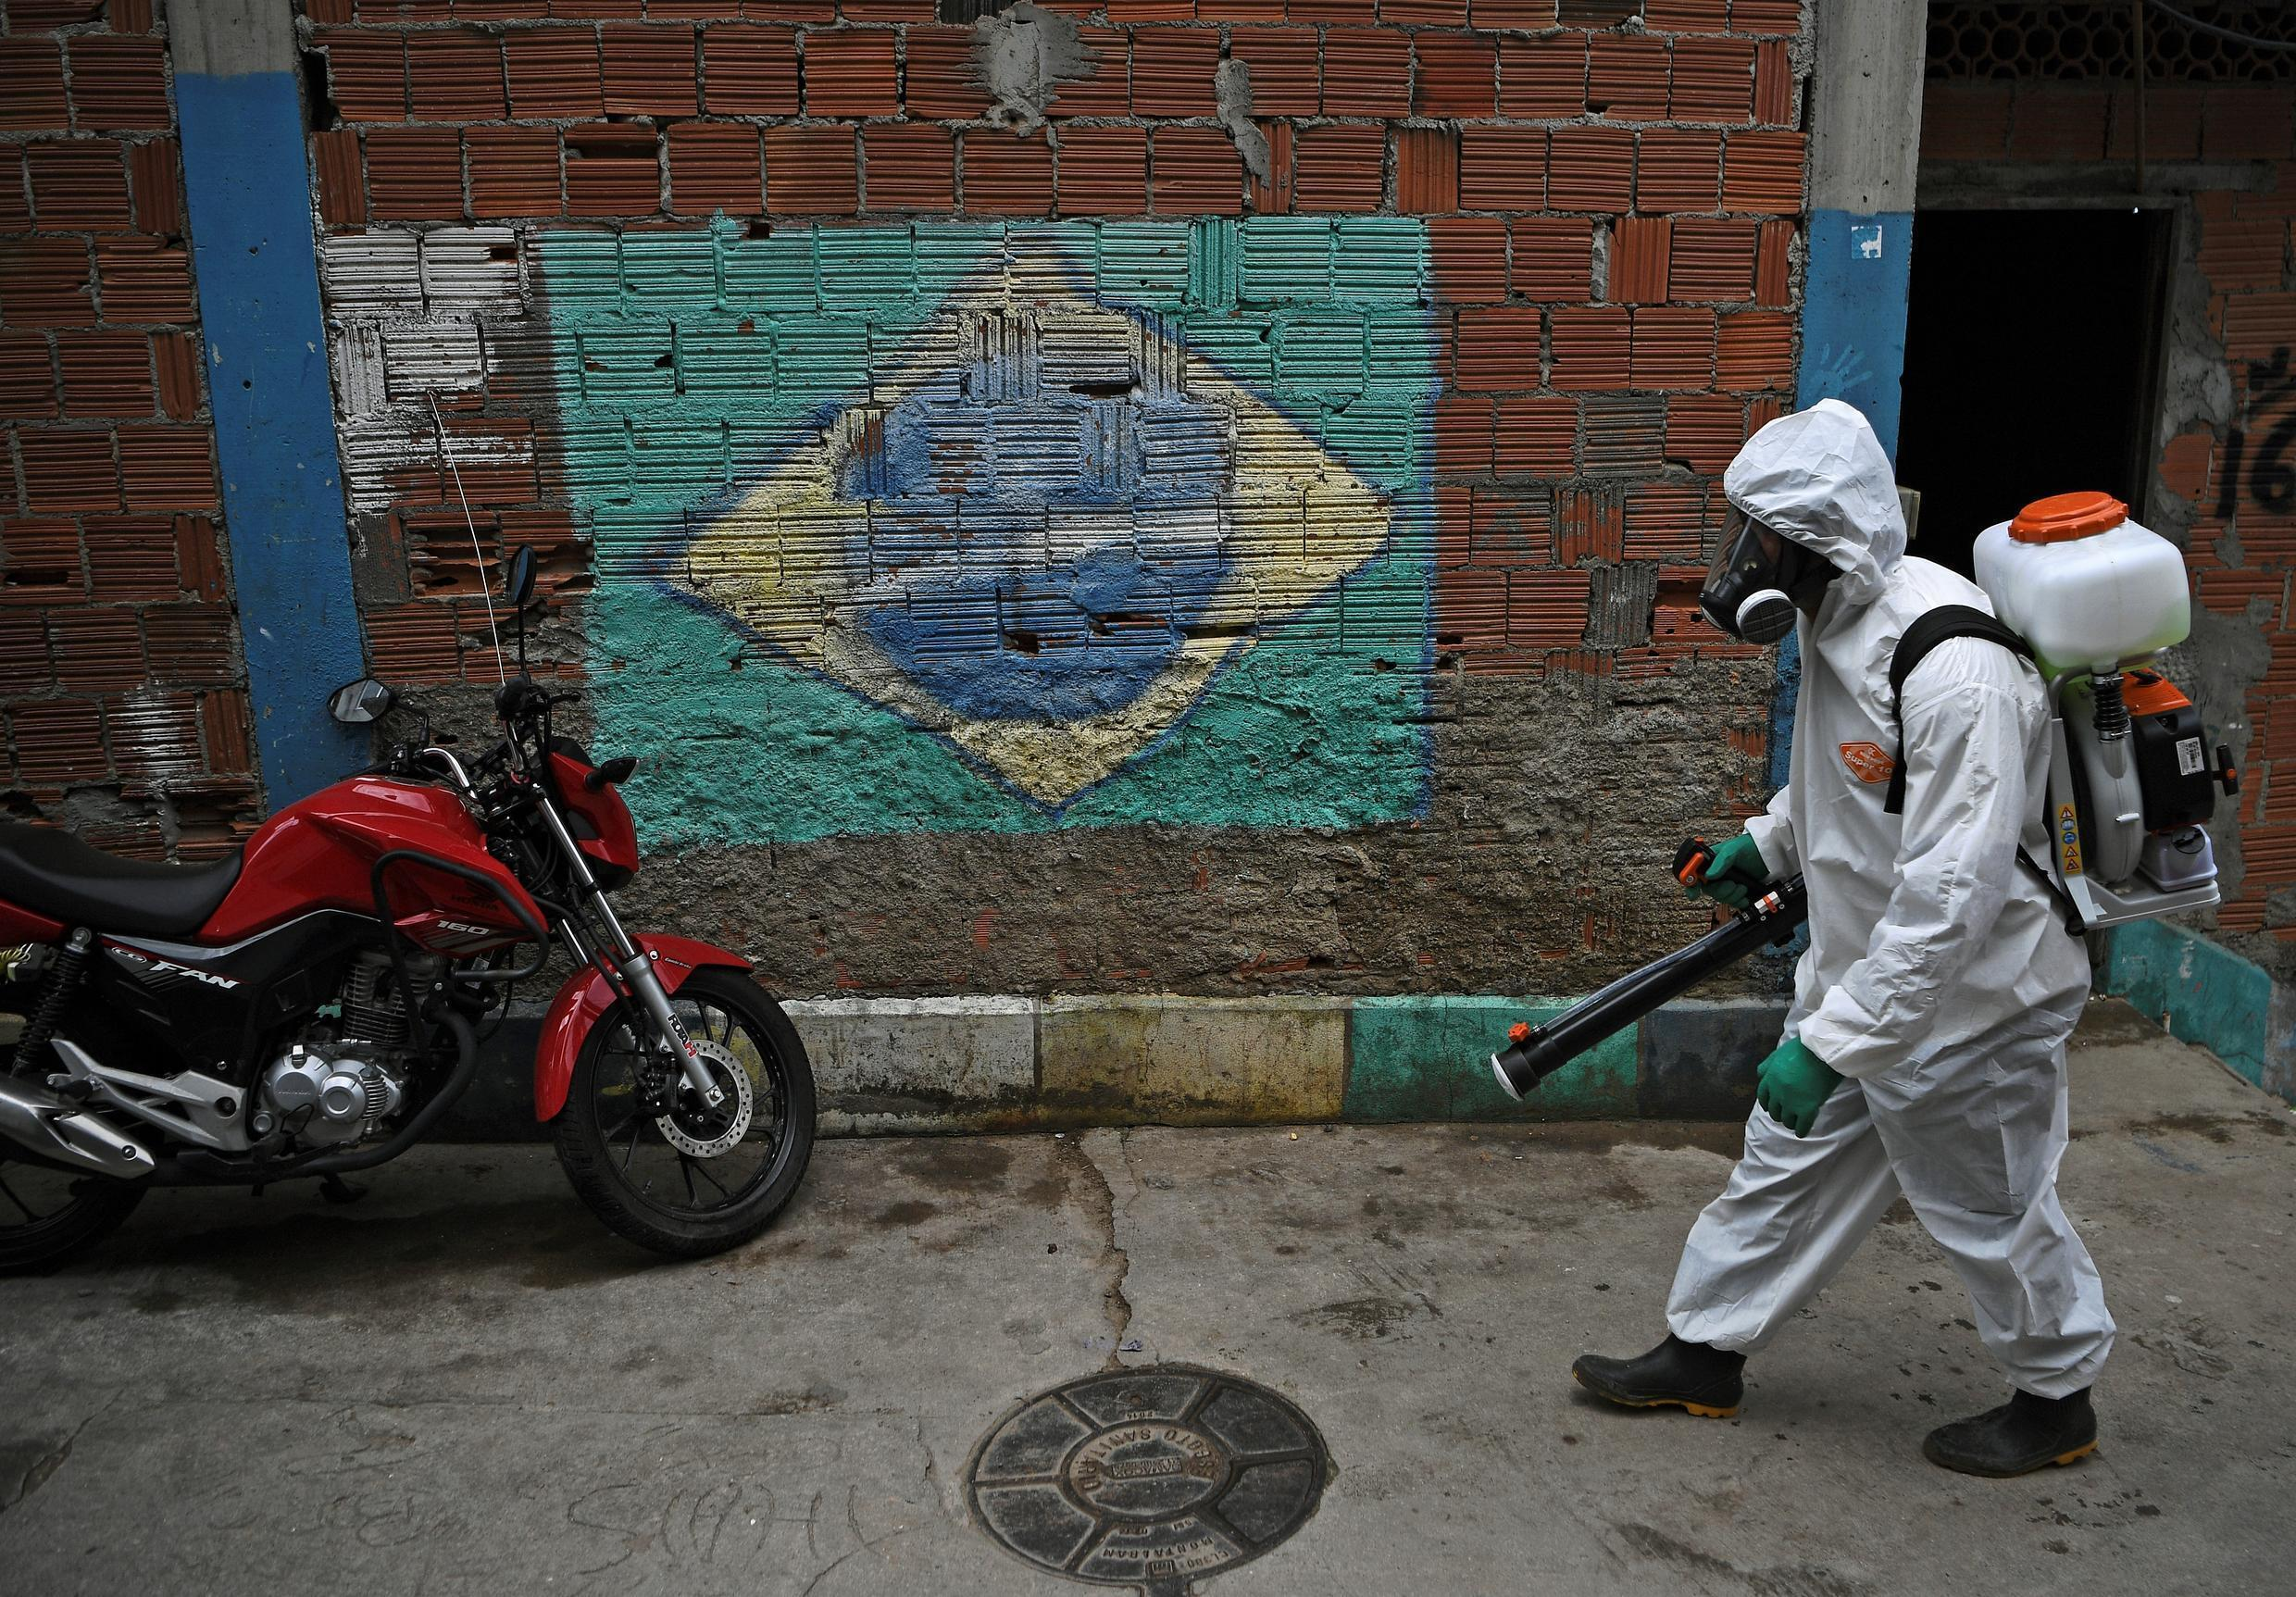 A volunteer walks past a mural of the Brazilian flag in April 2020 as he disinfects an area in Rio de Janeiro, Brazil.